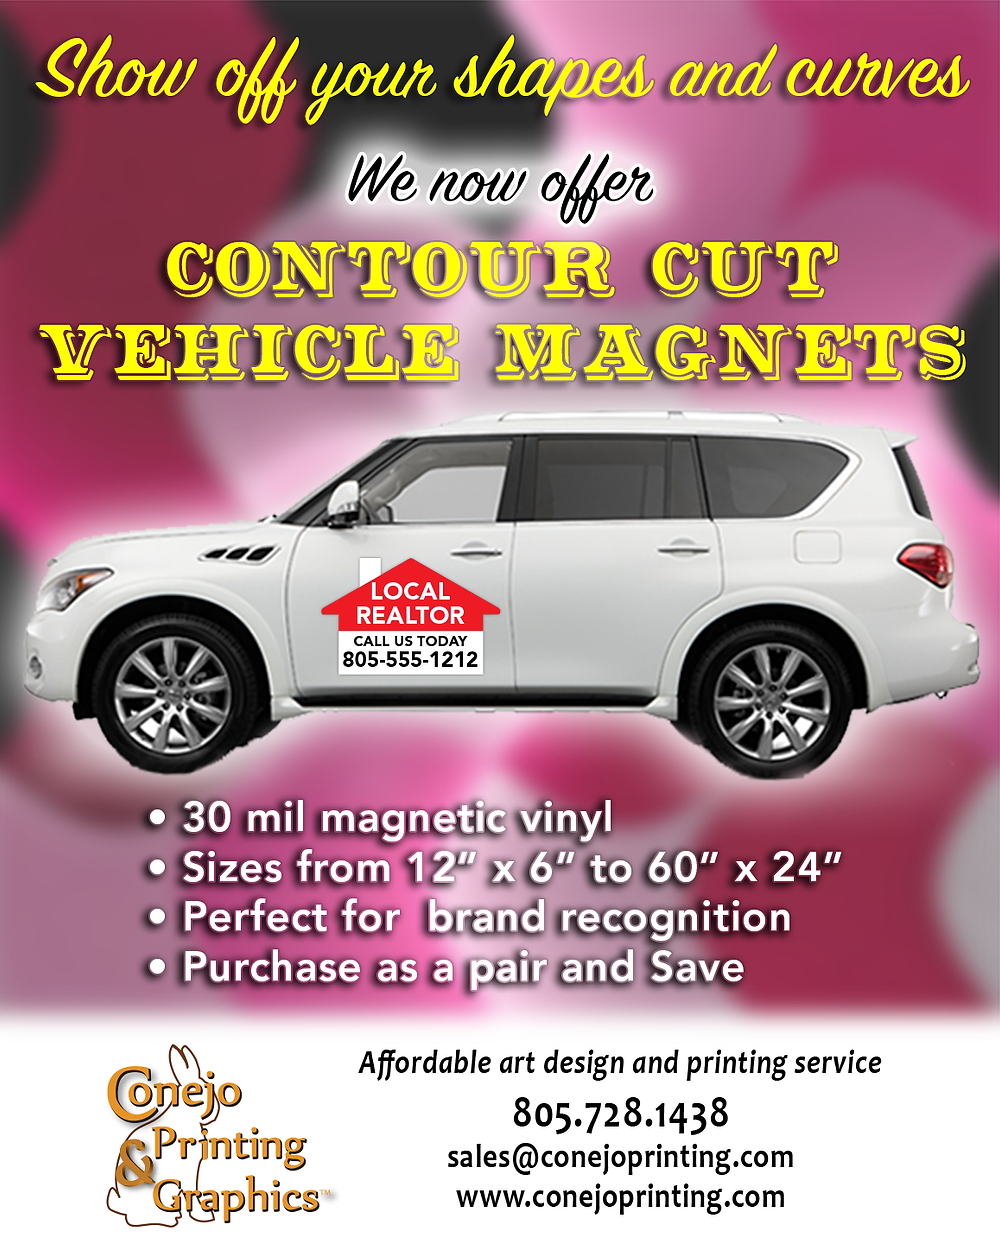 Contour shape vehicle magnets